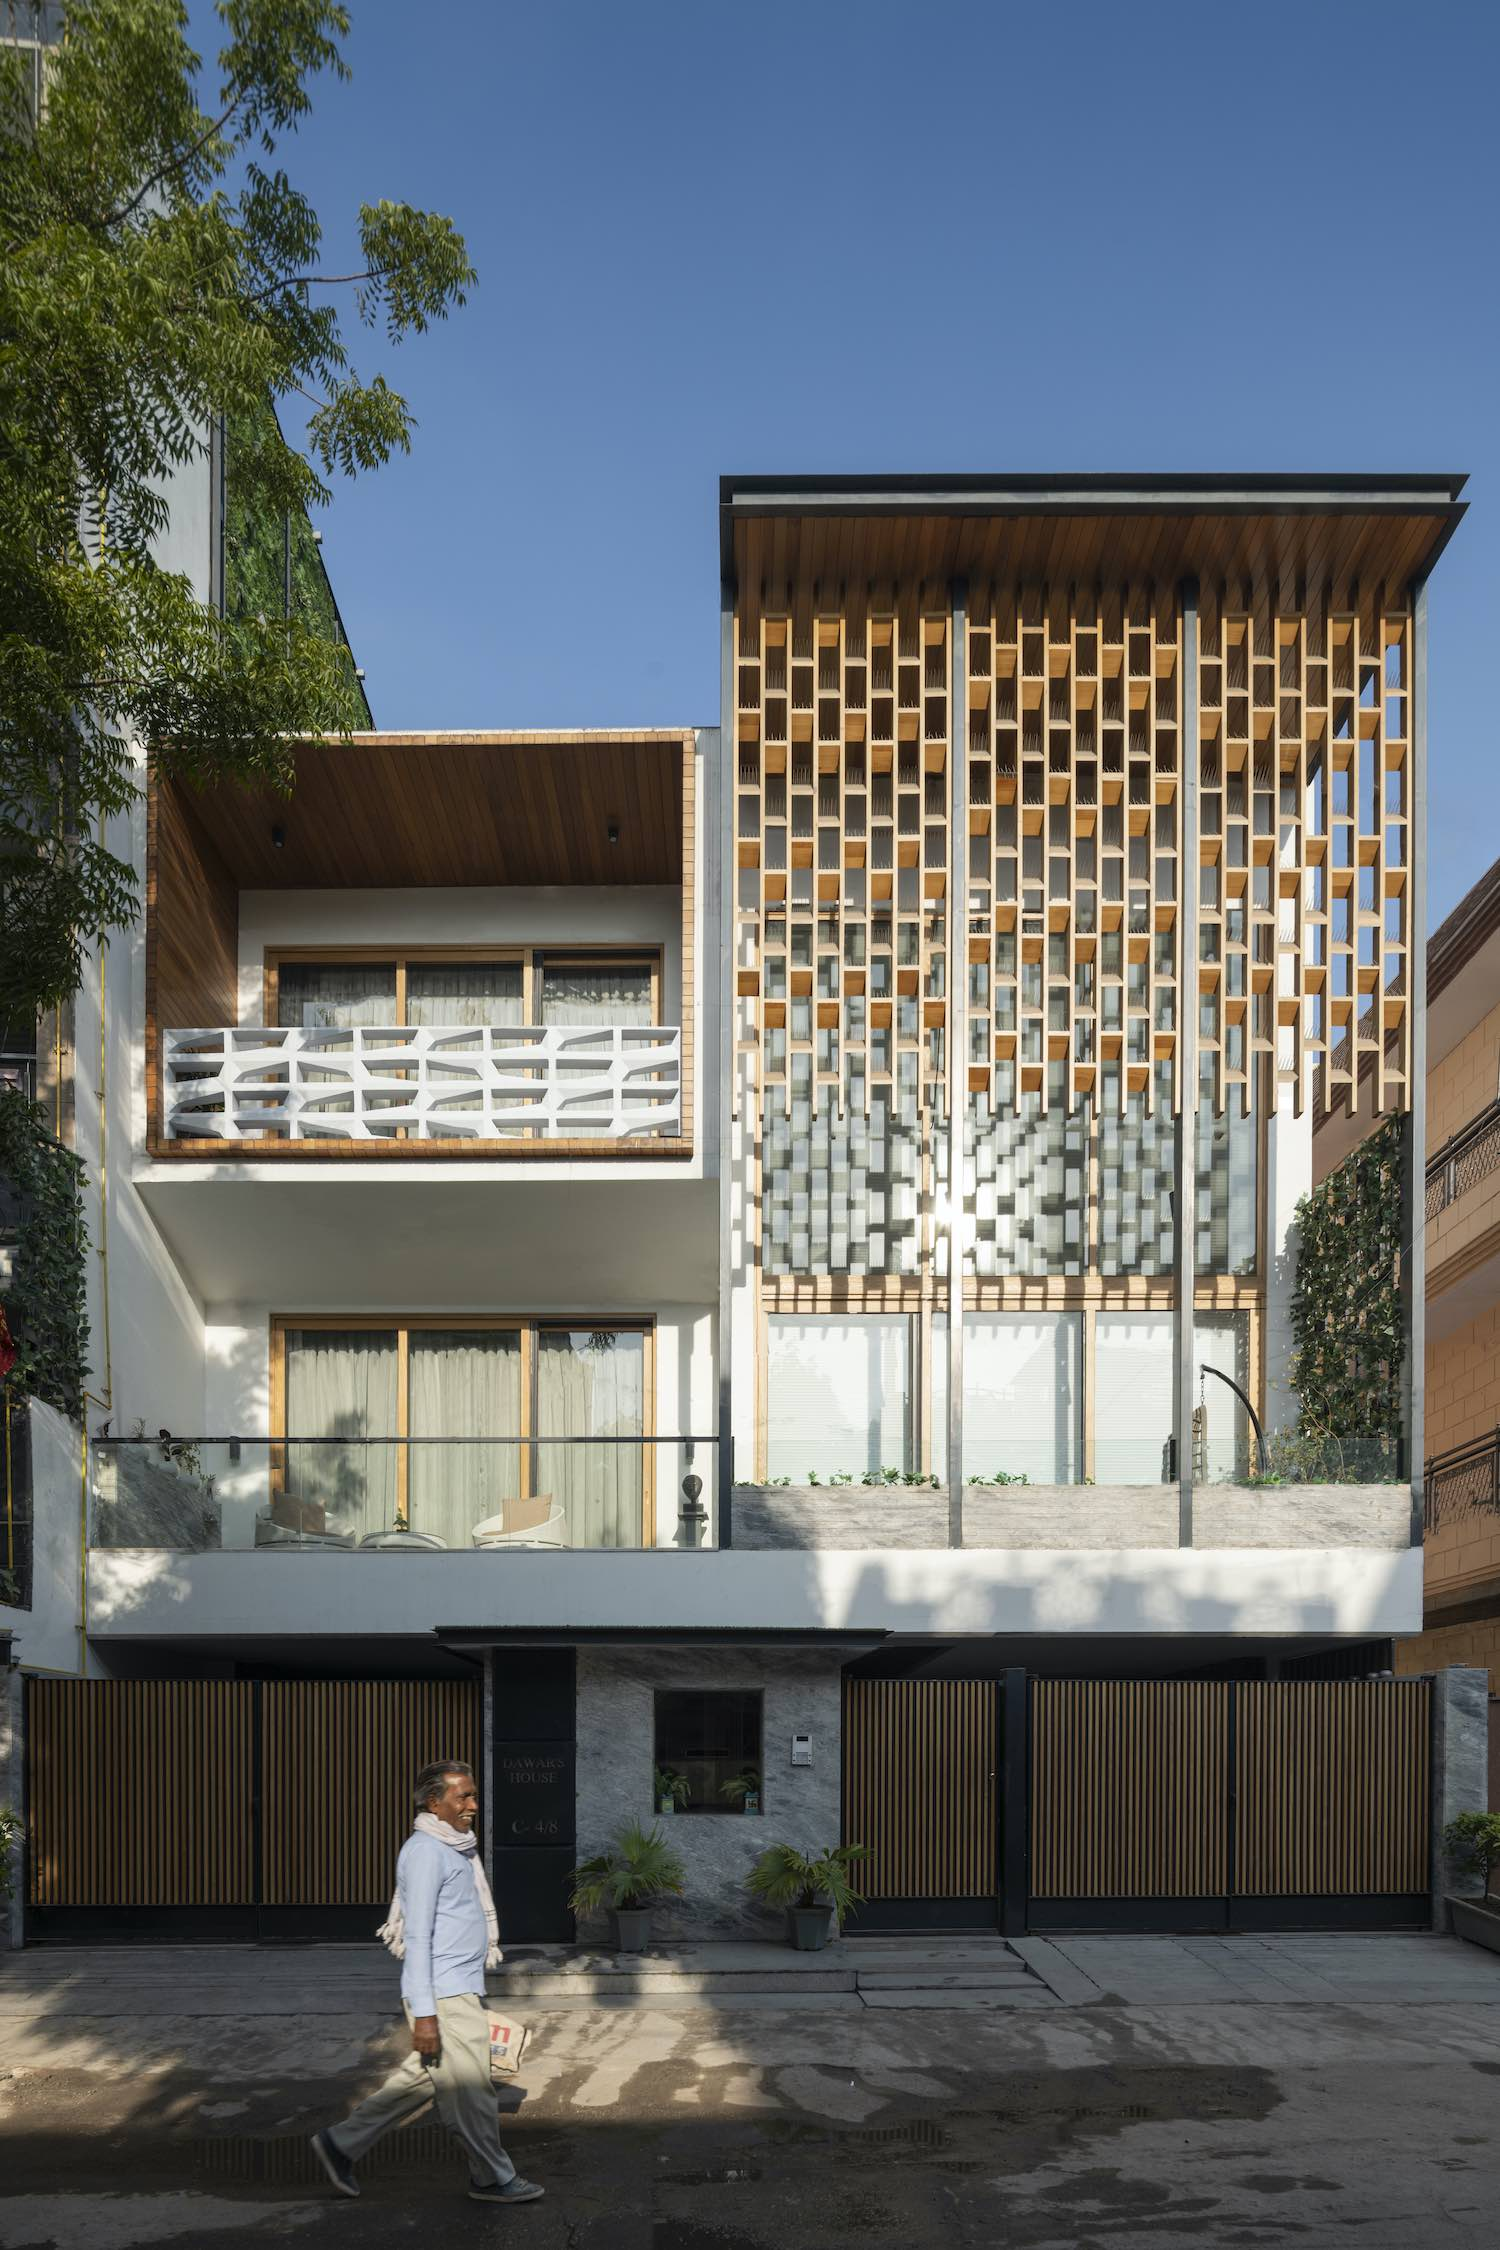 The Screen House in New Delhi, India designed by Spaces Architects@ka